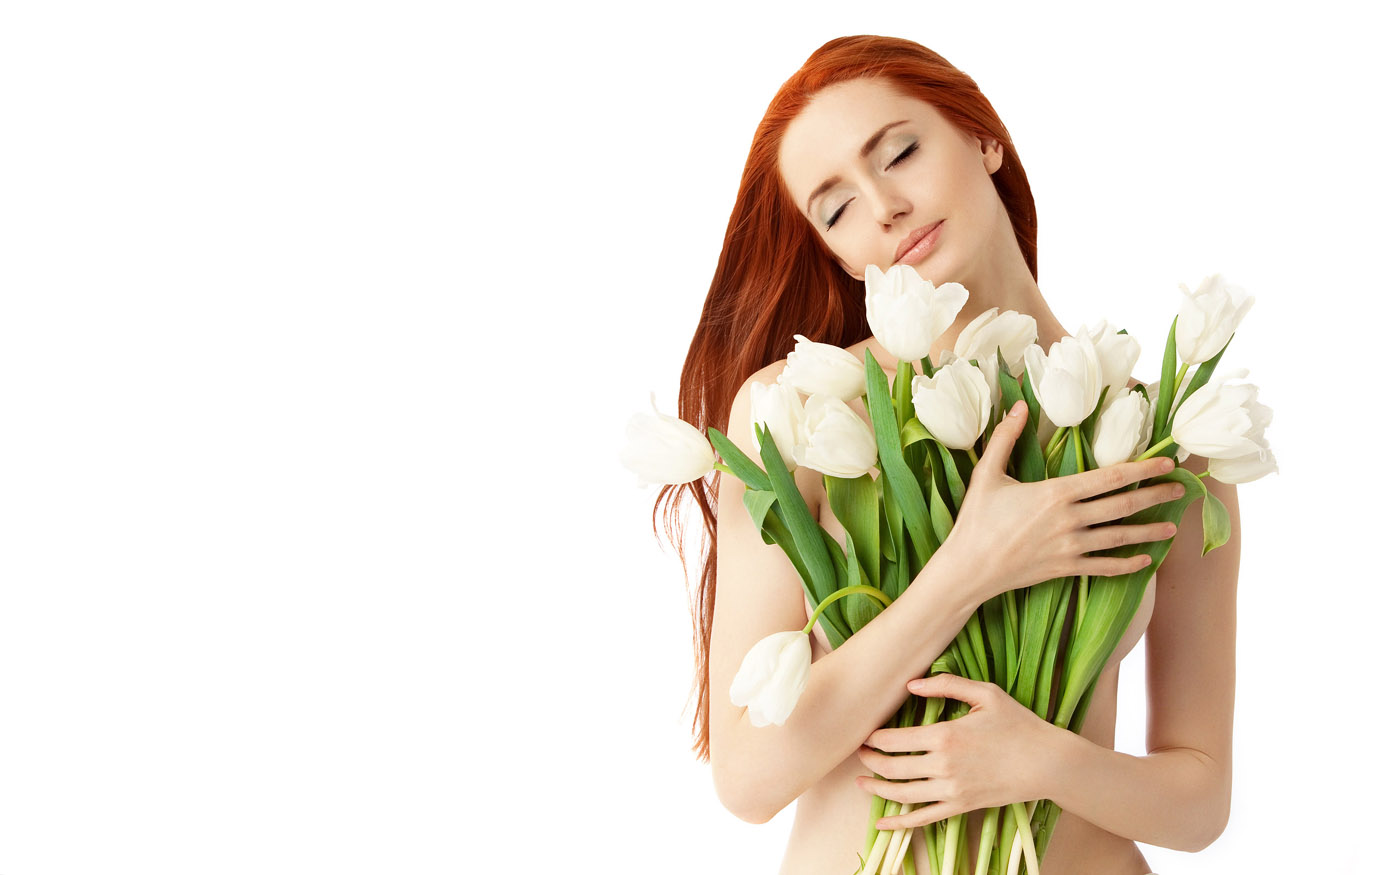 Woman with flowers 25761